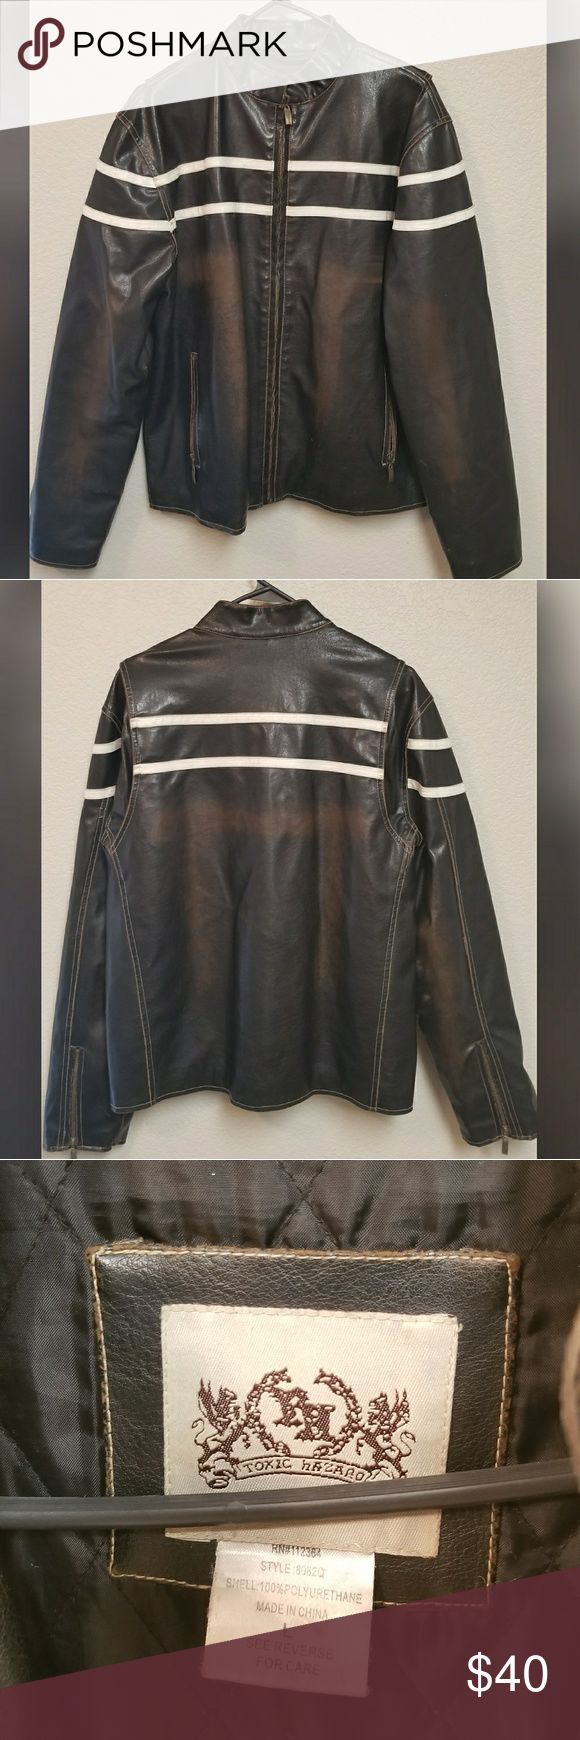 Men's Toxic Hazard Faux Leather Jacket Large Men's Toxic Hazard black with brown distressed faux leather (100% polyurethane) jacket size Large -- perfect for fall! Toxic Hazard Jackets & Coats